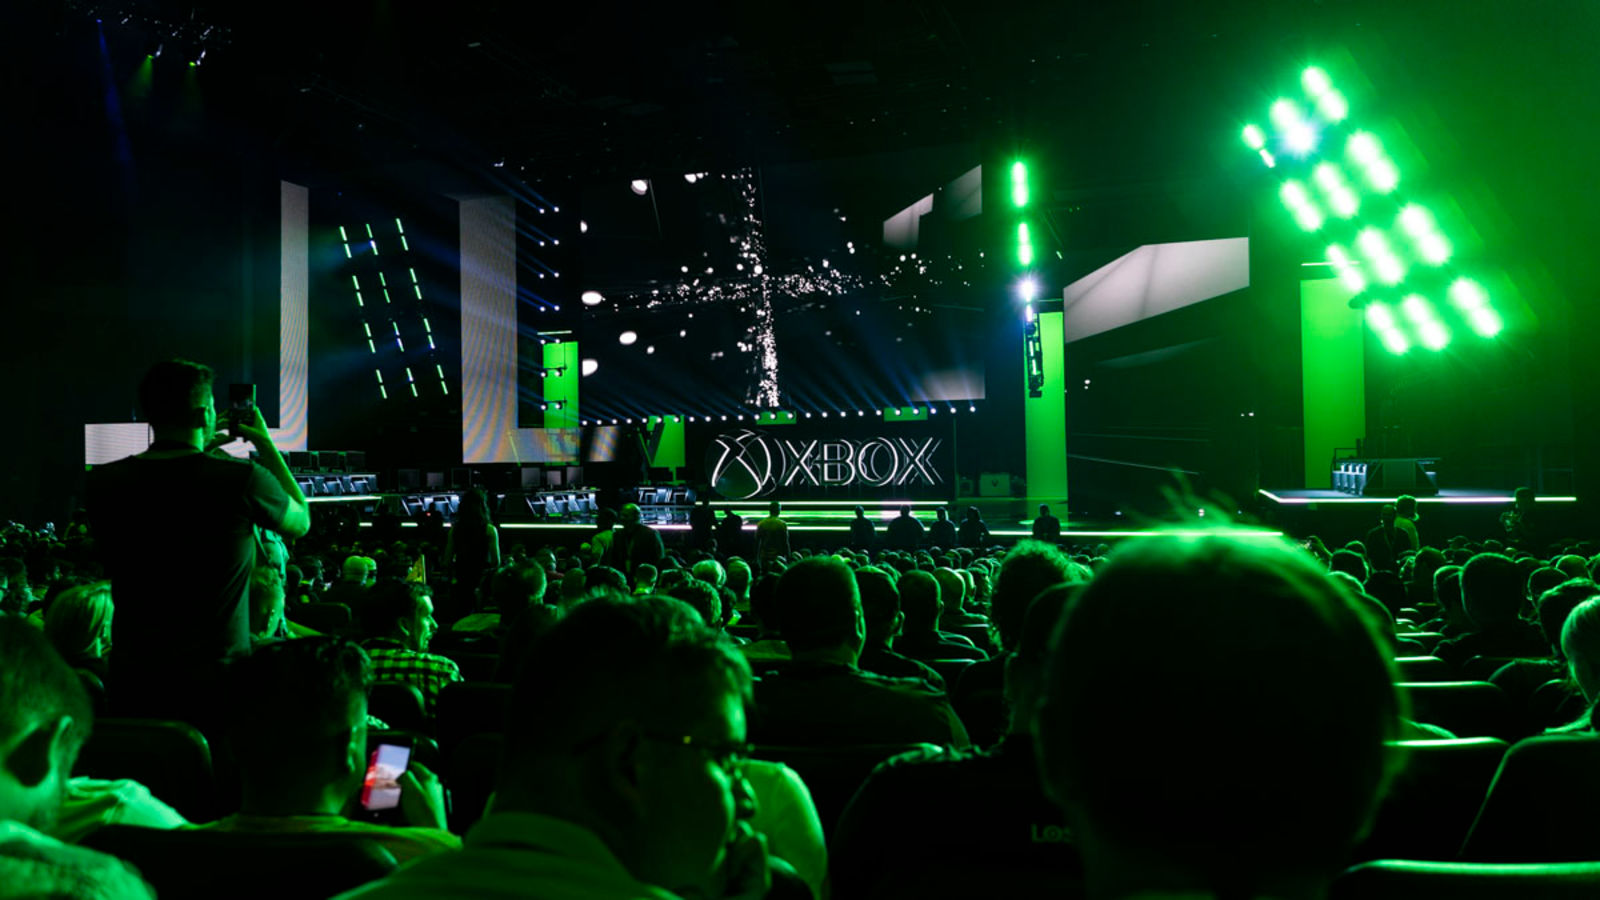 Microsoft : le streaming de jeux Xbox One sur mobile sera lancé en octobre